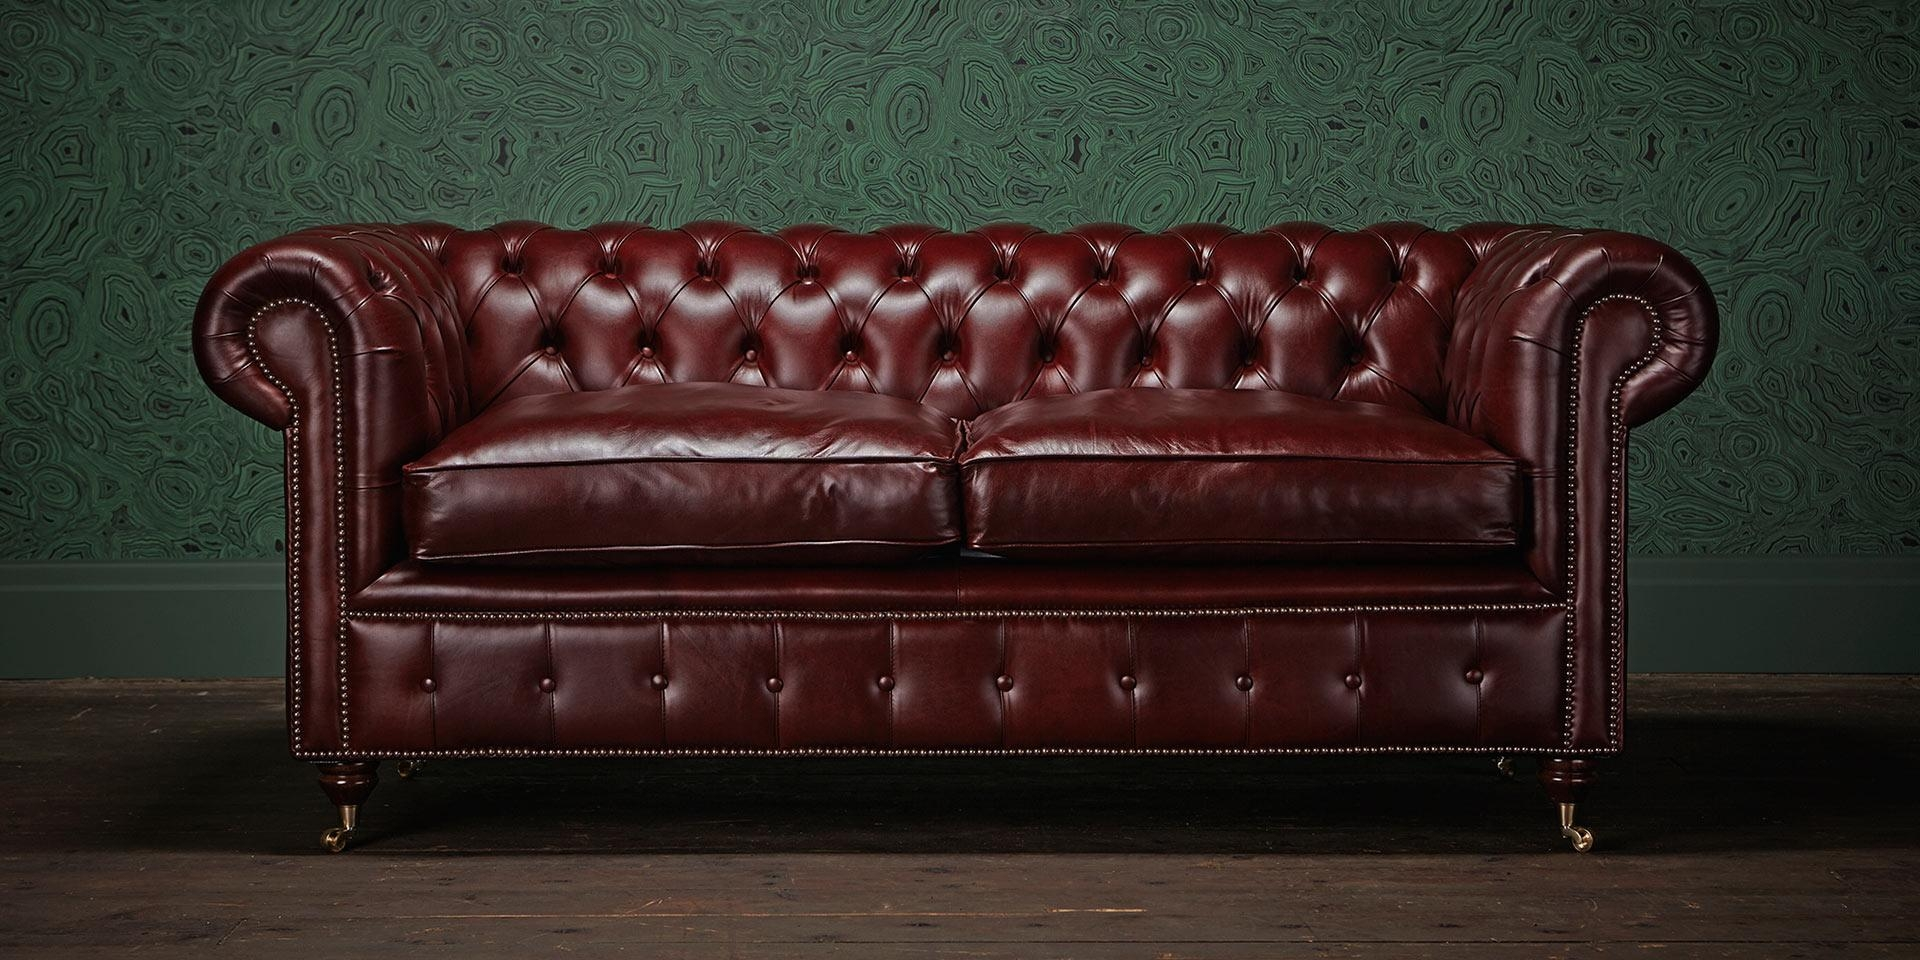 ▻ Sofa : 8 Serene Chesterfield Lear With Chesterfield Lear Sofa Inside Red Chesterfield Sofas (View 17 of 20)